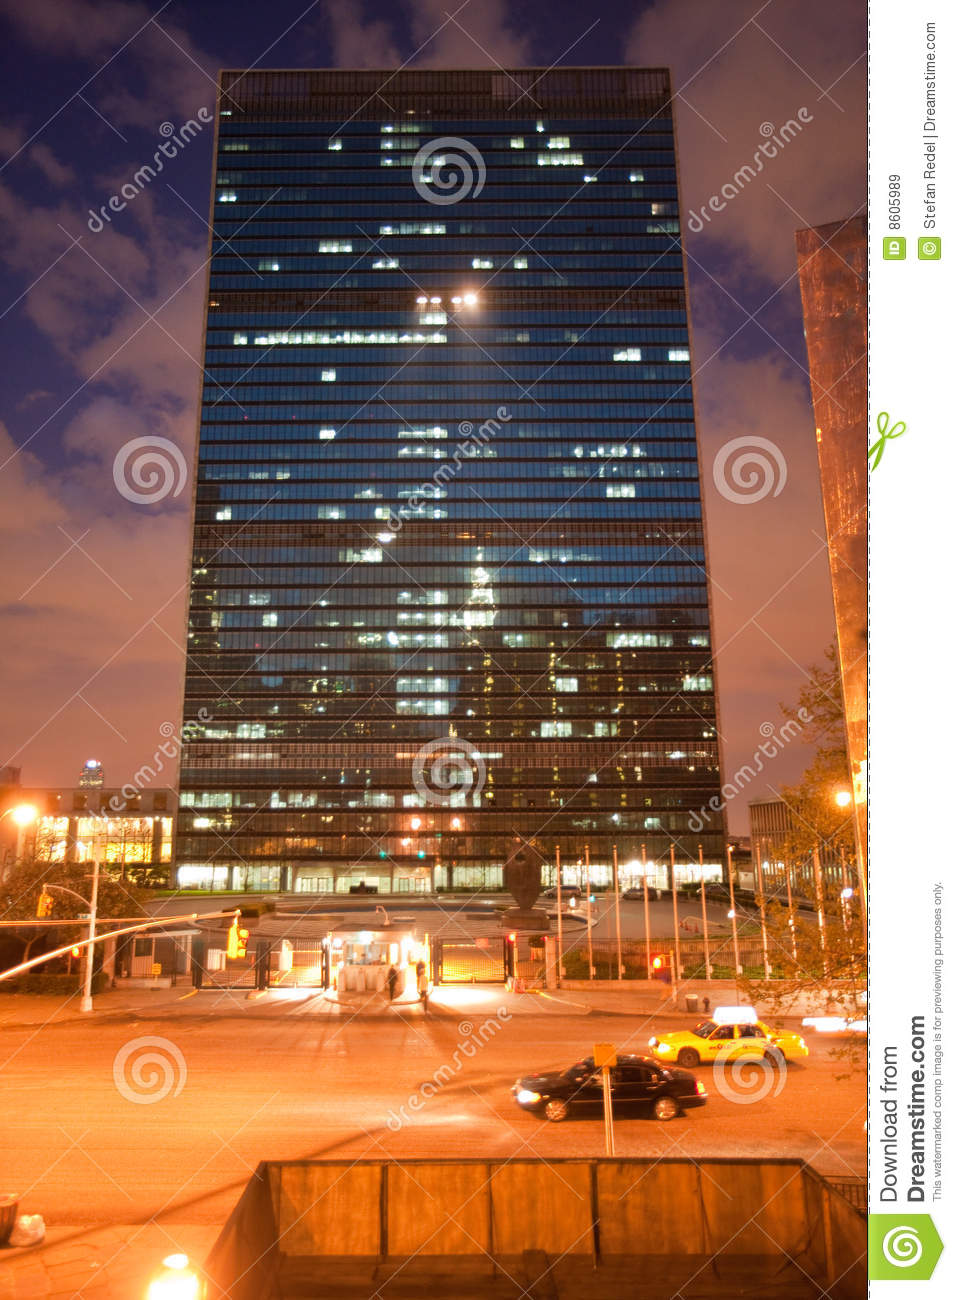 New york apartment night : Royalty free stock images united nations headquarters image